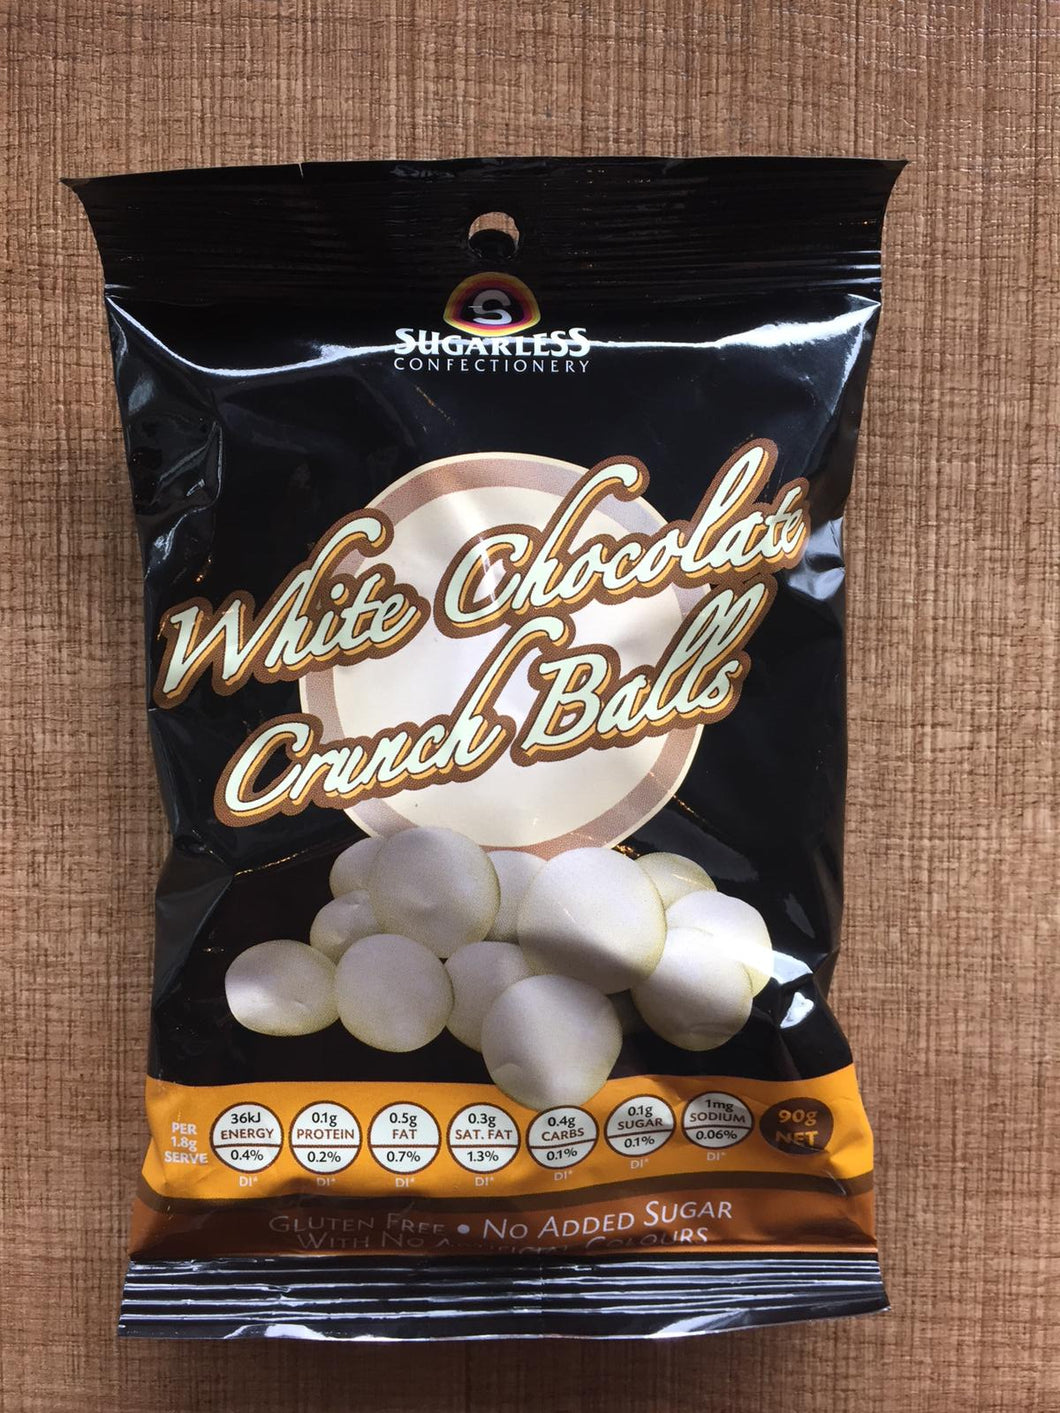 Sugarless Confectionary - White Chocolate Crunch Balls